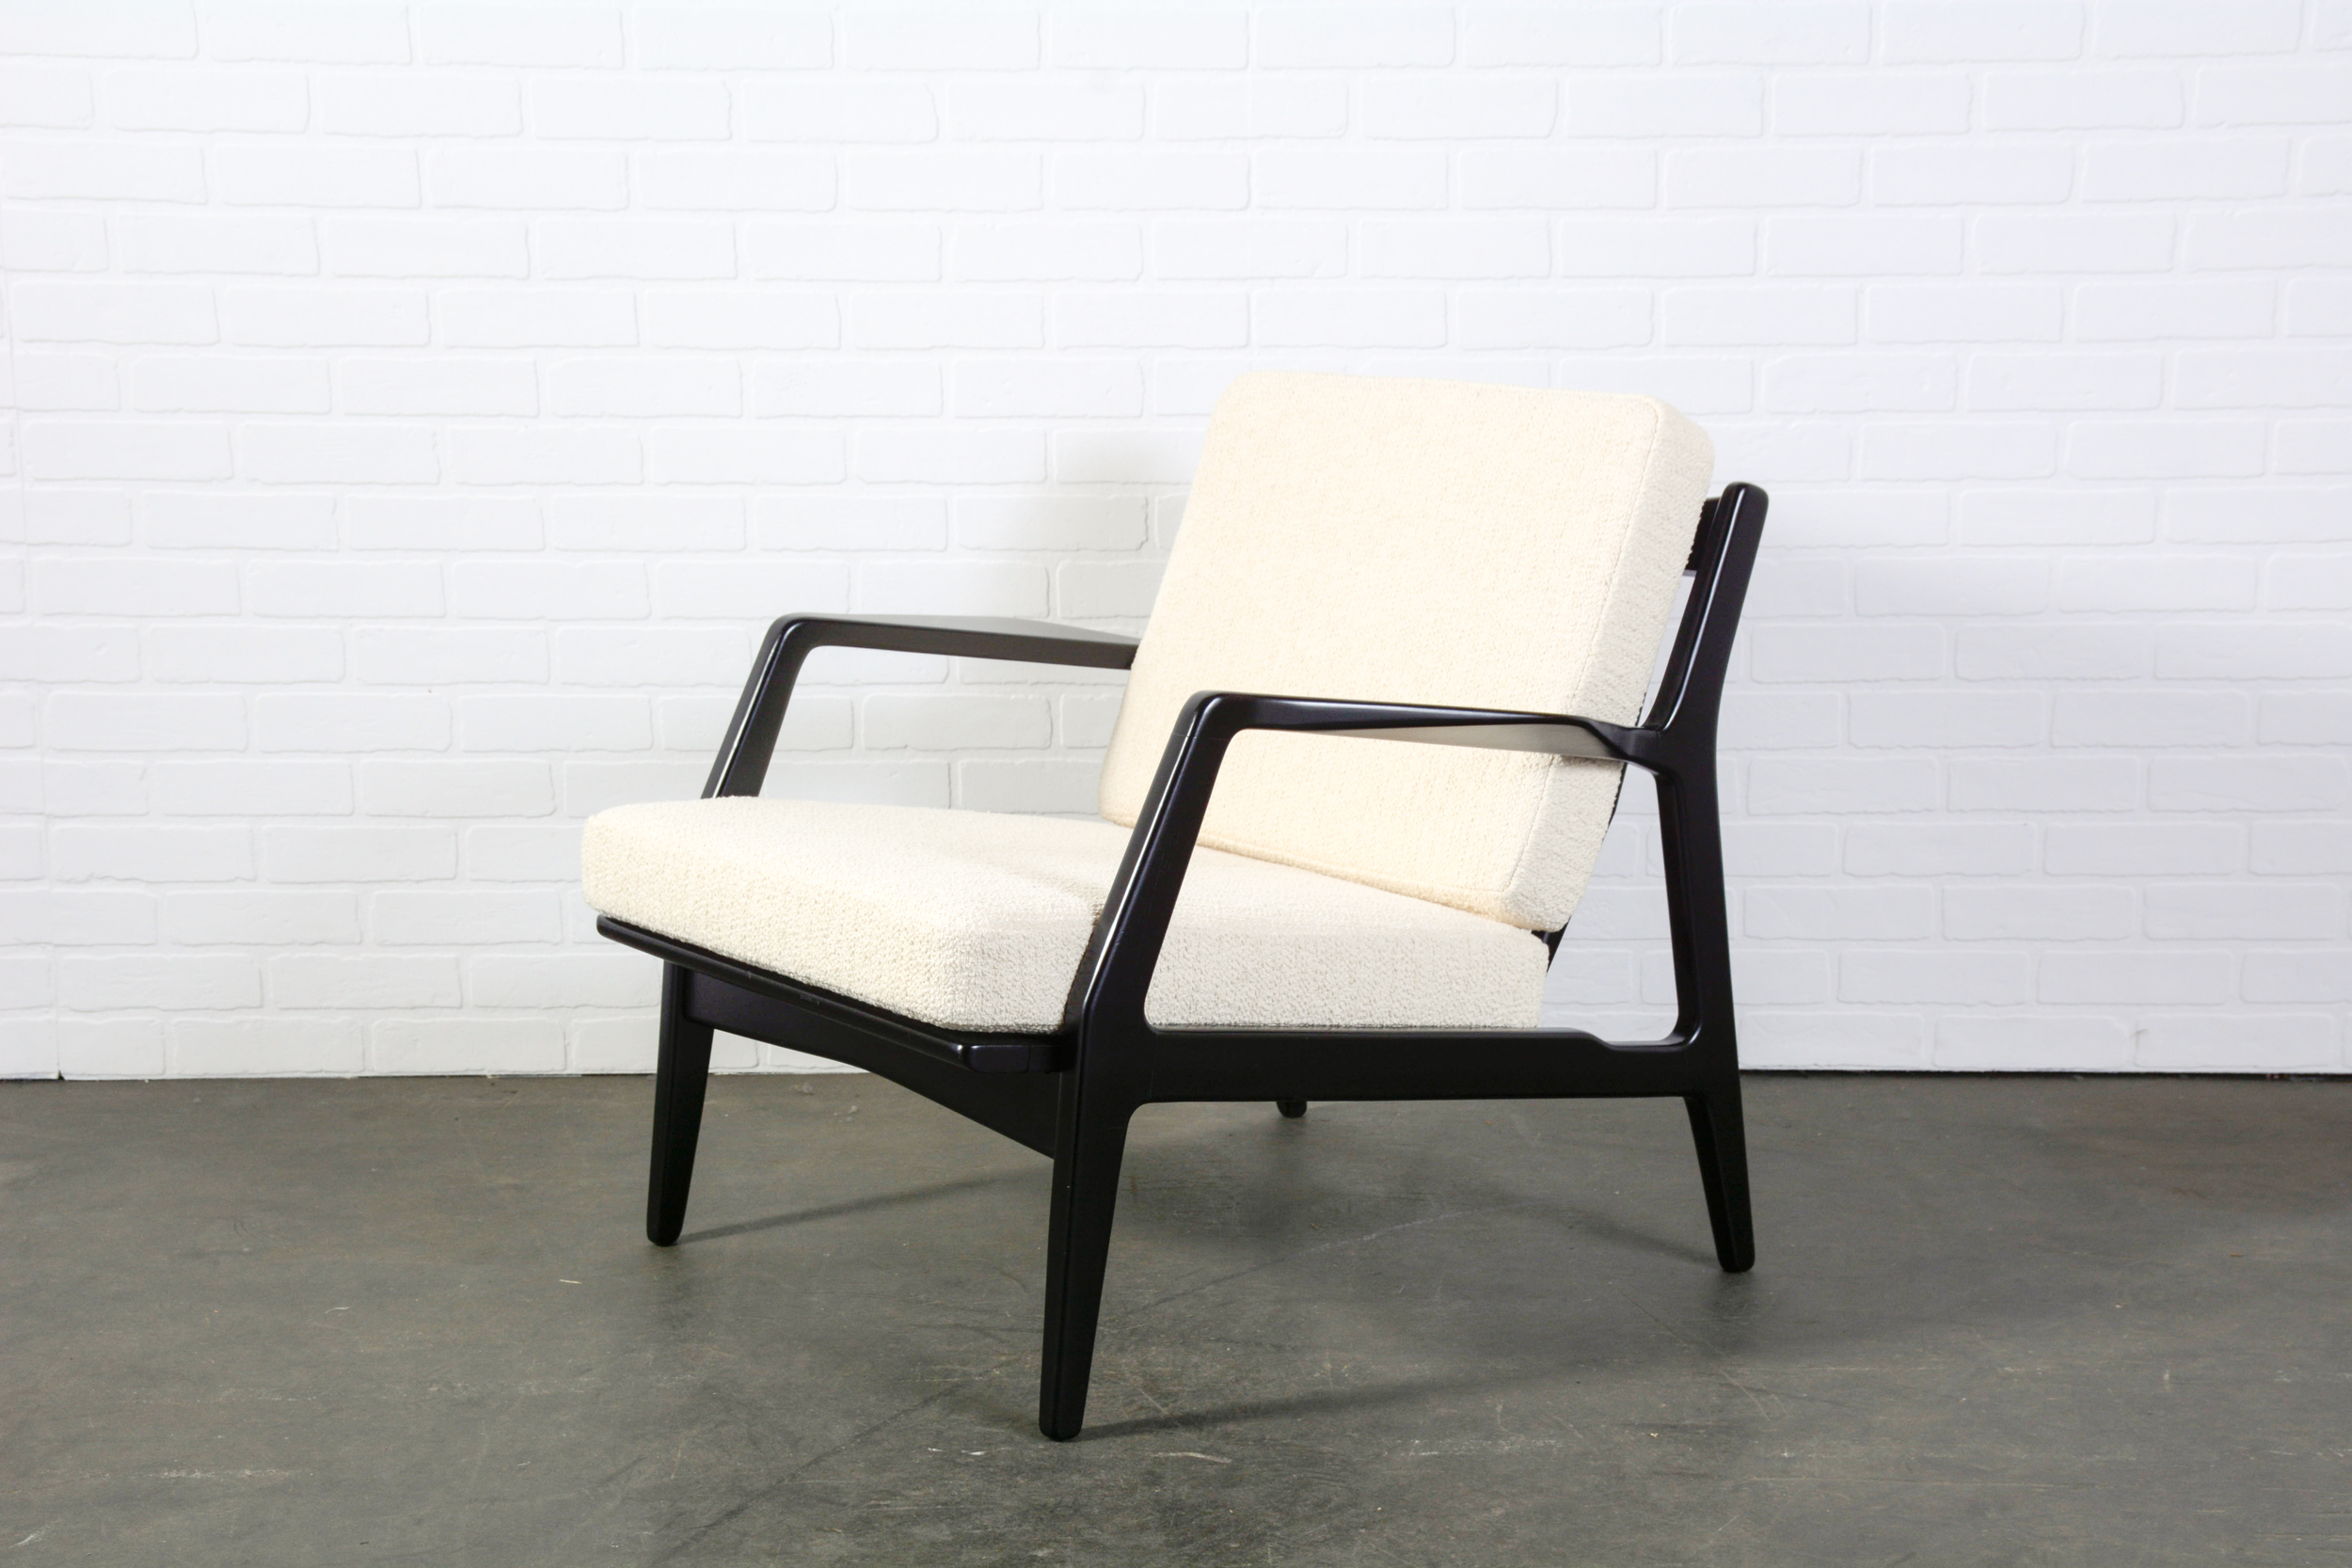 Vintage Lounge Chair by Ib Kofod Larsen